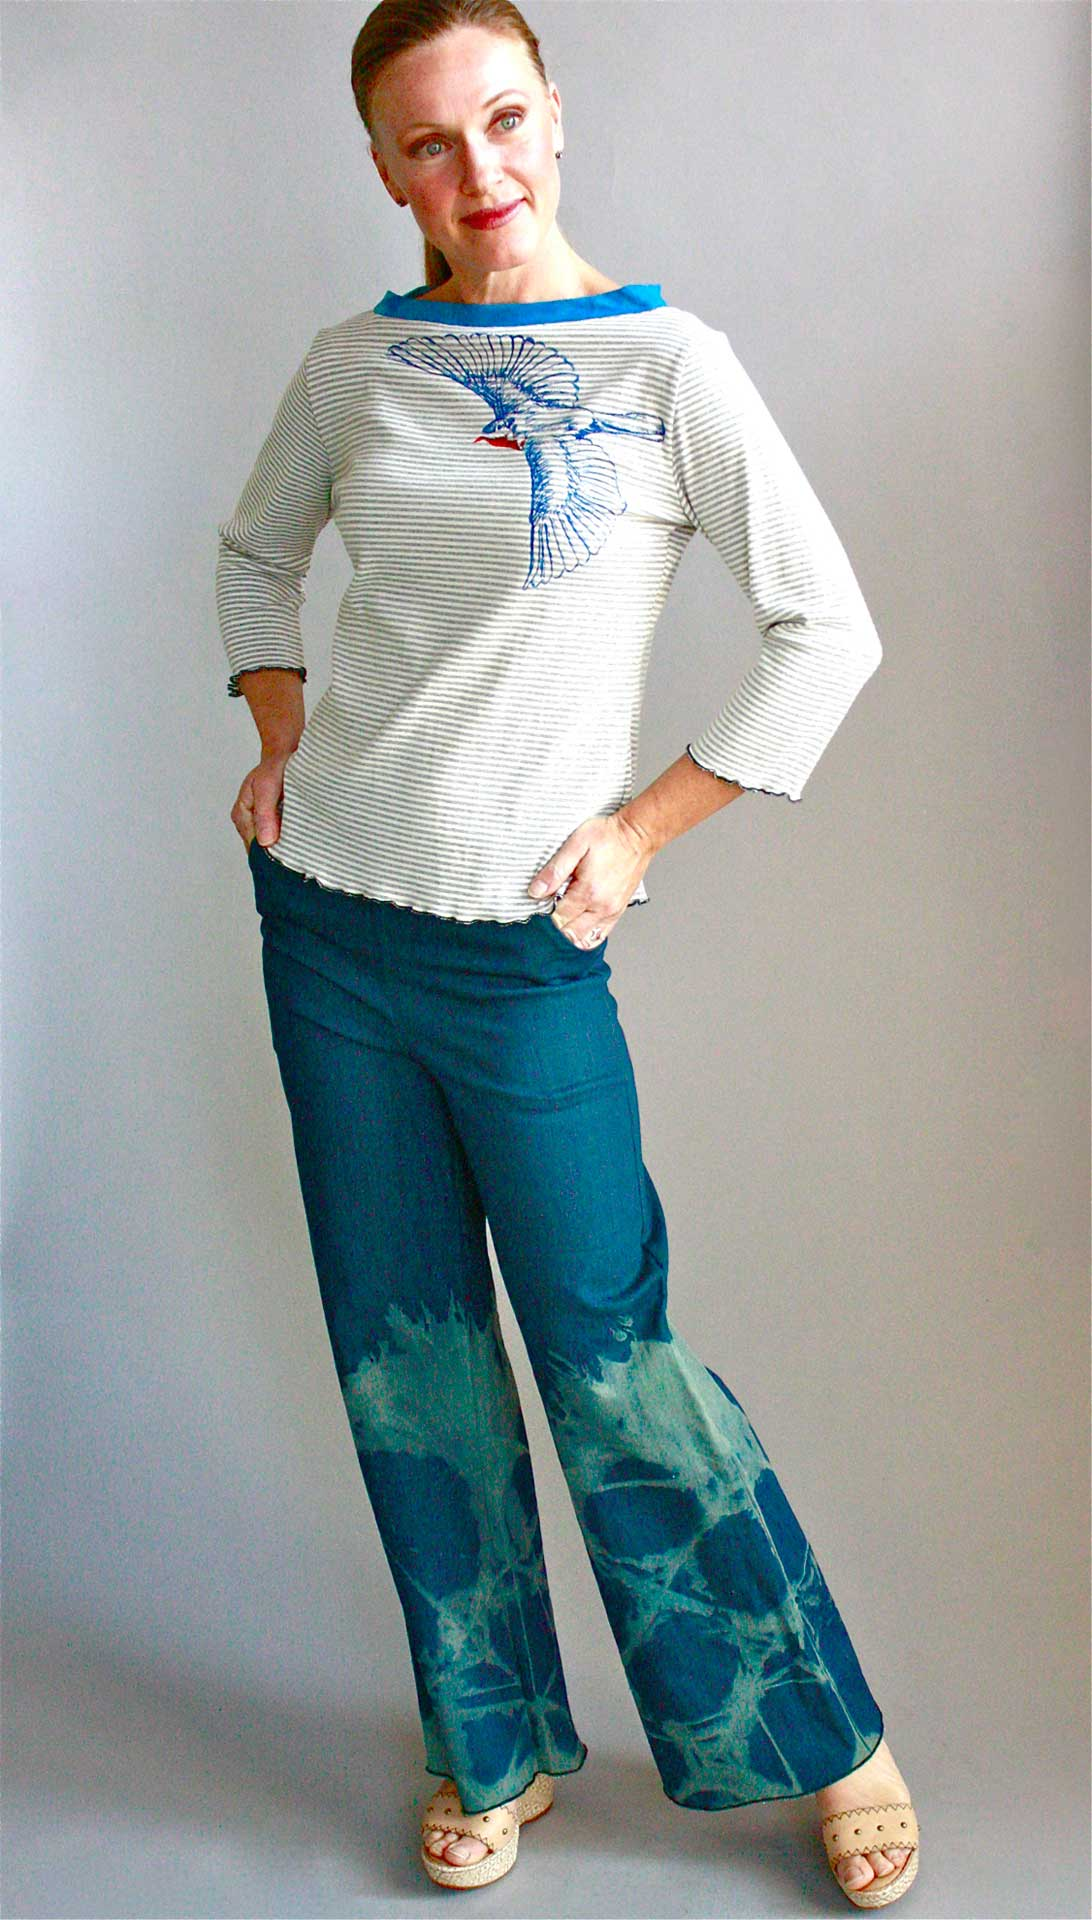 Bluebird Tee & Willow Pants.